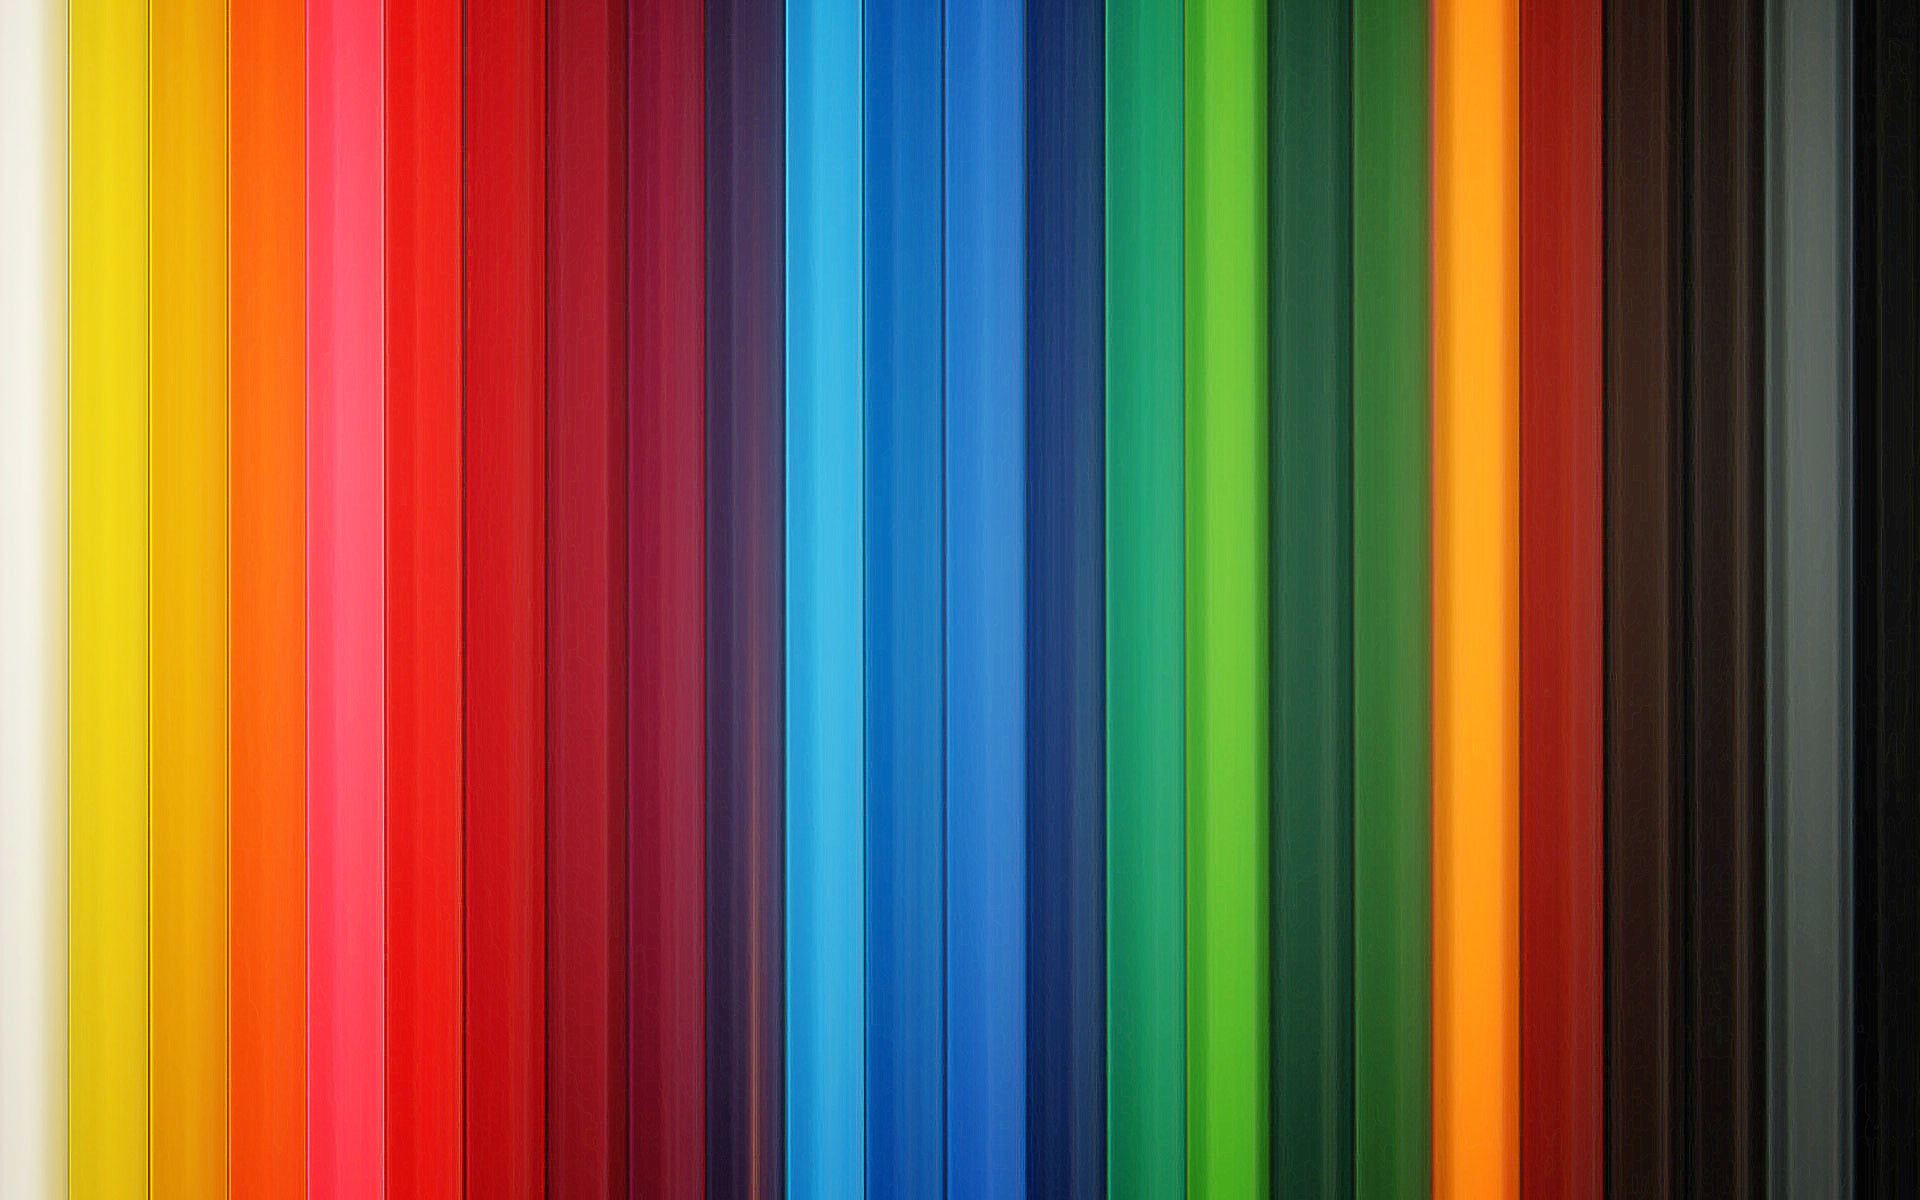 1920x1200 Colorful Desktop Backgrounds | Colorful For Desktop – HD Wallpapers | Paper  Crafting Backgrounds And Printables | Pinterest | Wallpaper, Hd wallpaper  and ...